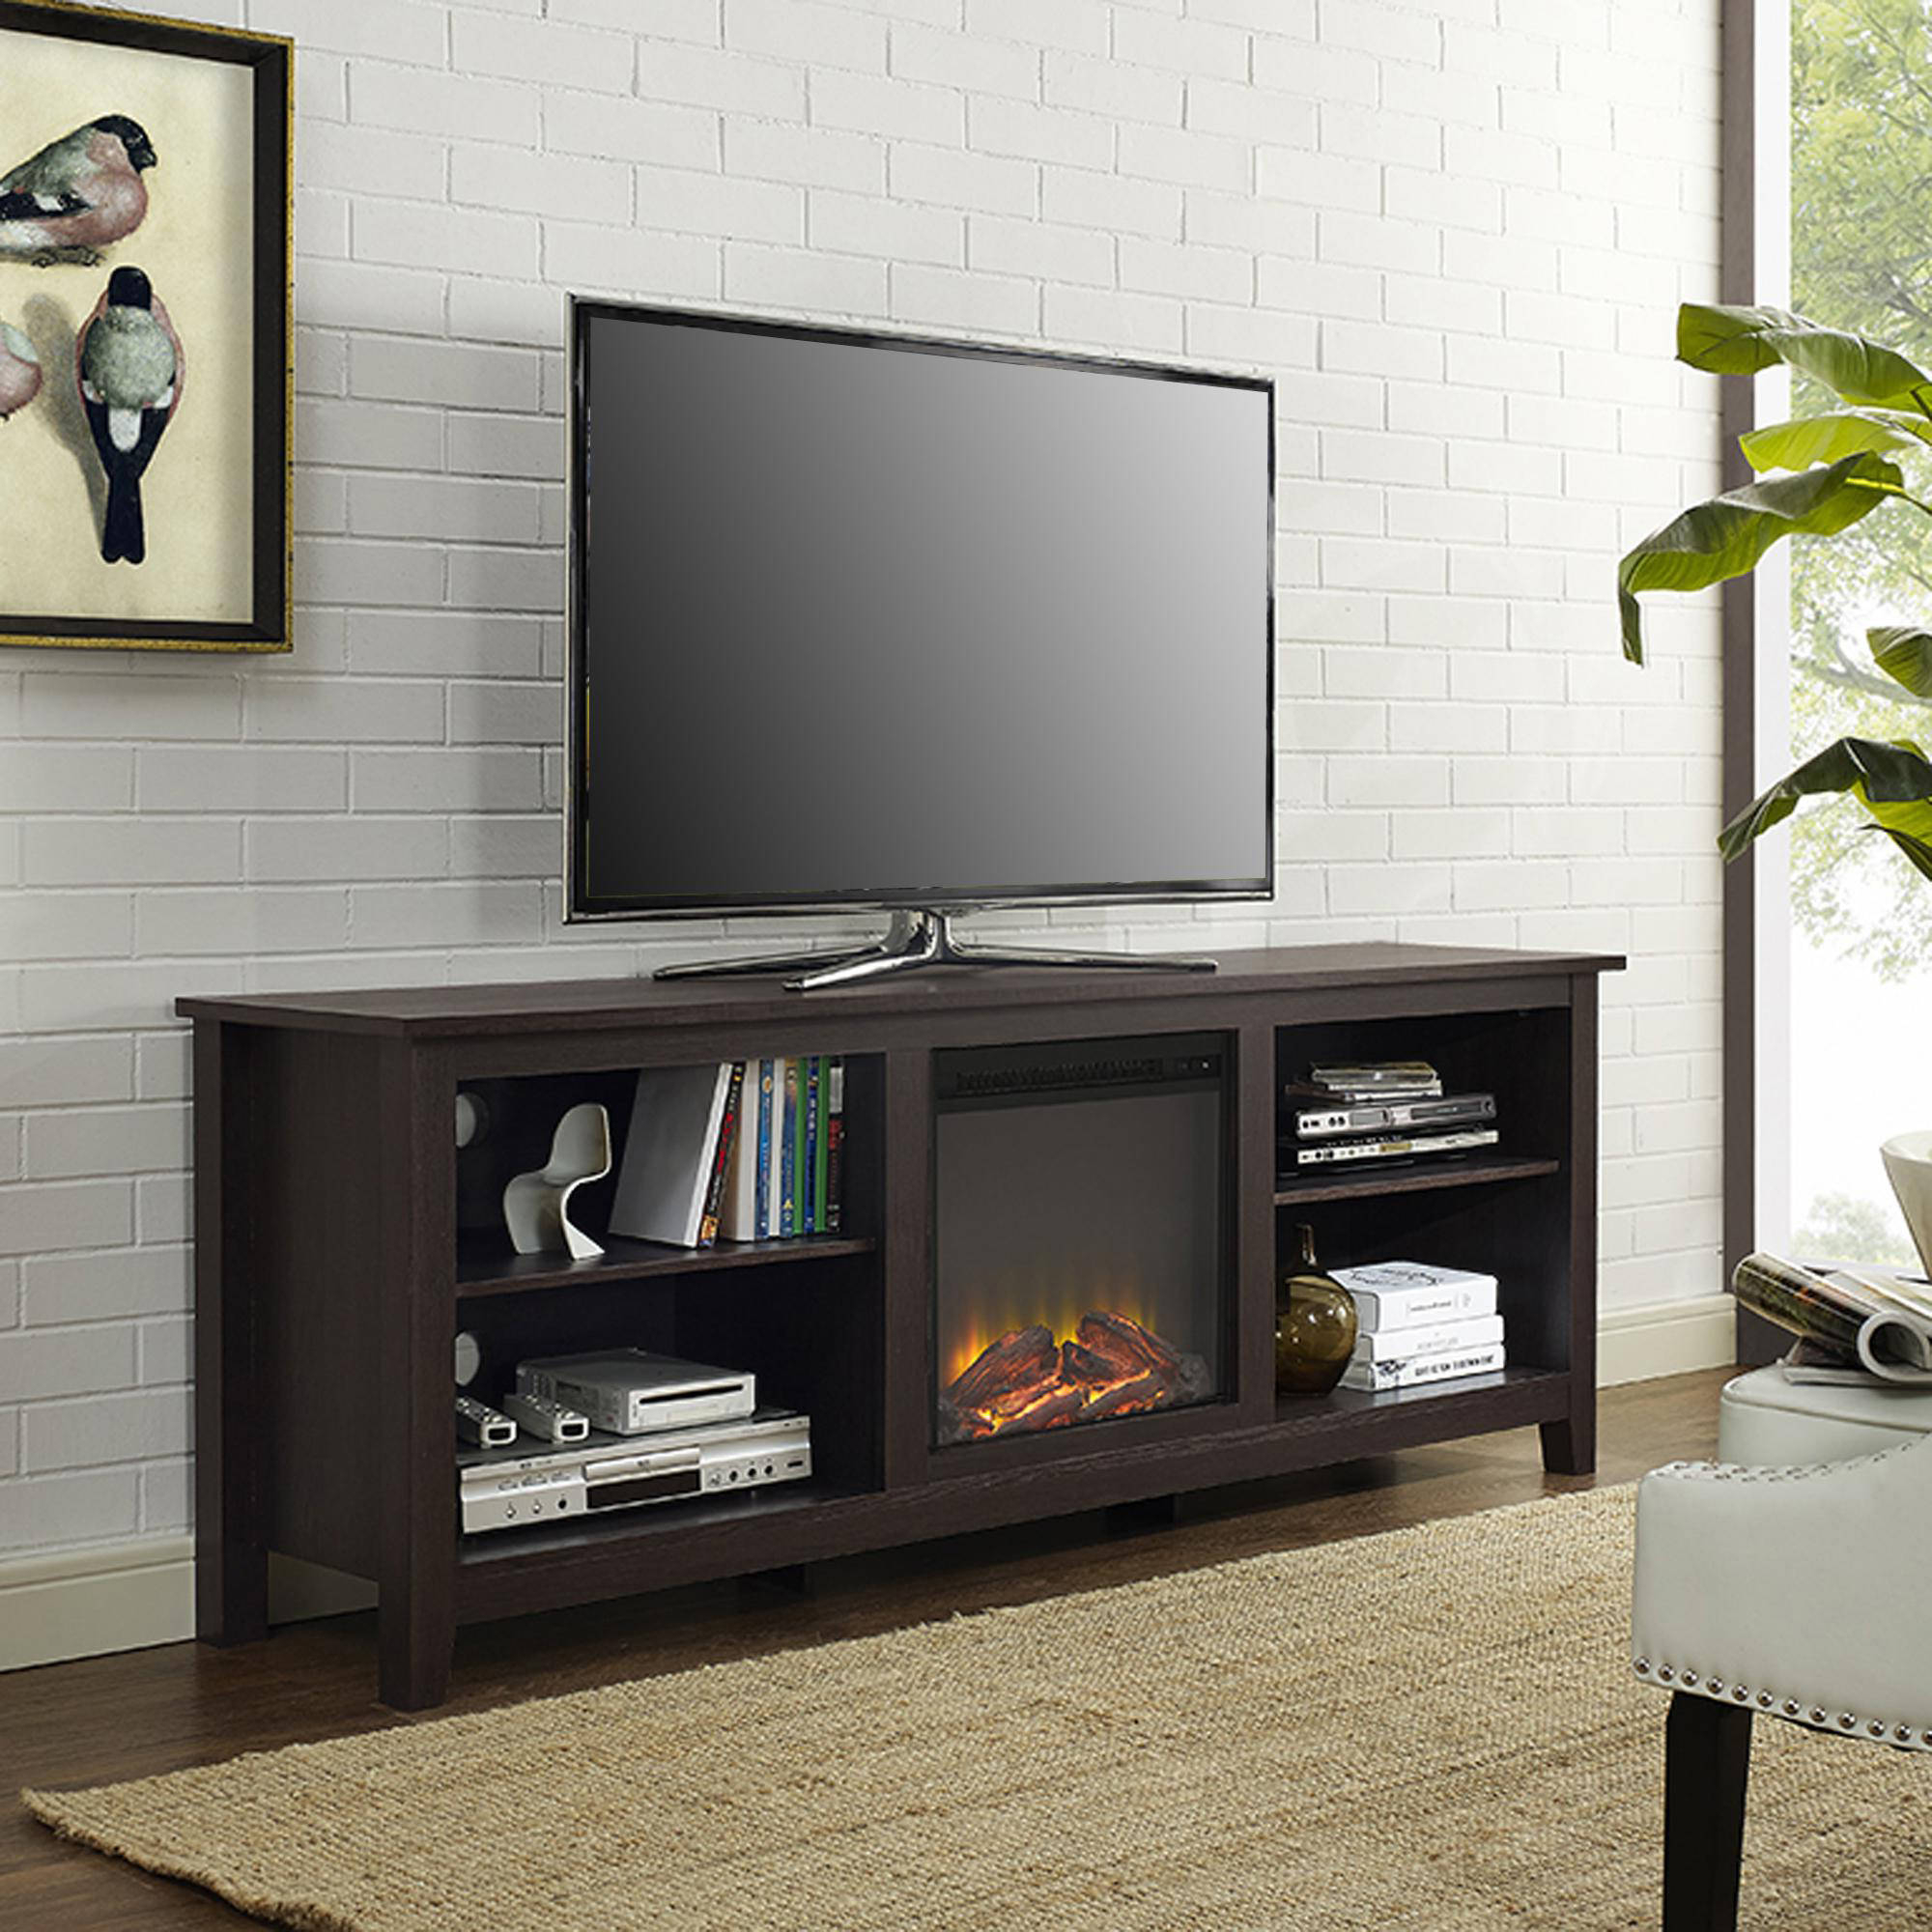 "Latest Cheap Wood Tv Stands With Regard To 70"" Fireplace Tv Media Storage Stand For Tv's Up To 75"" Espresso (View 3 of 10)"